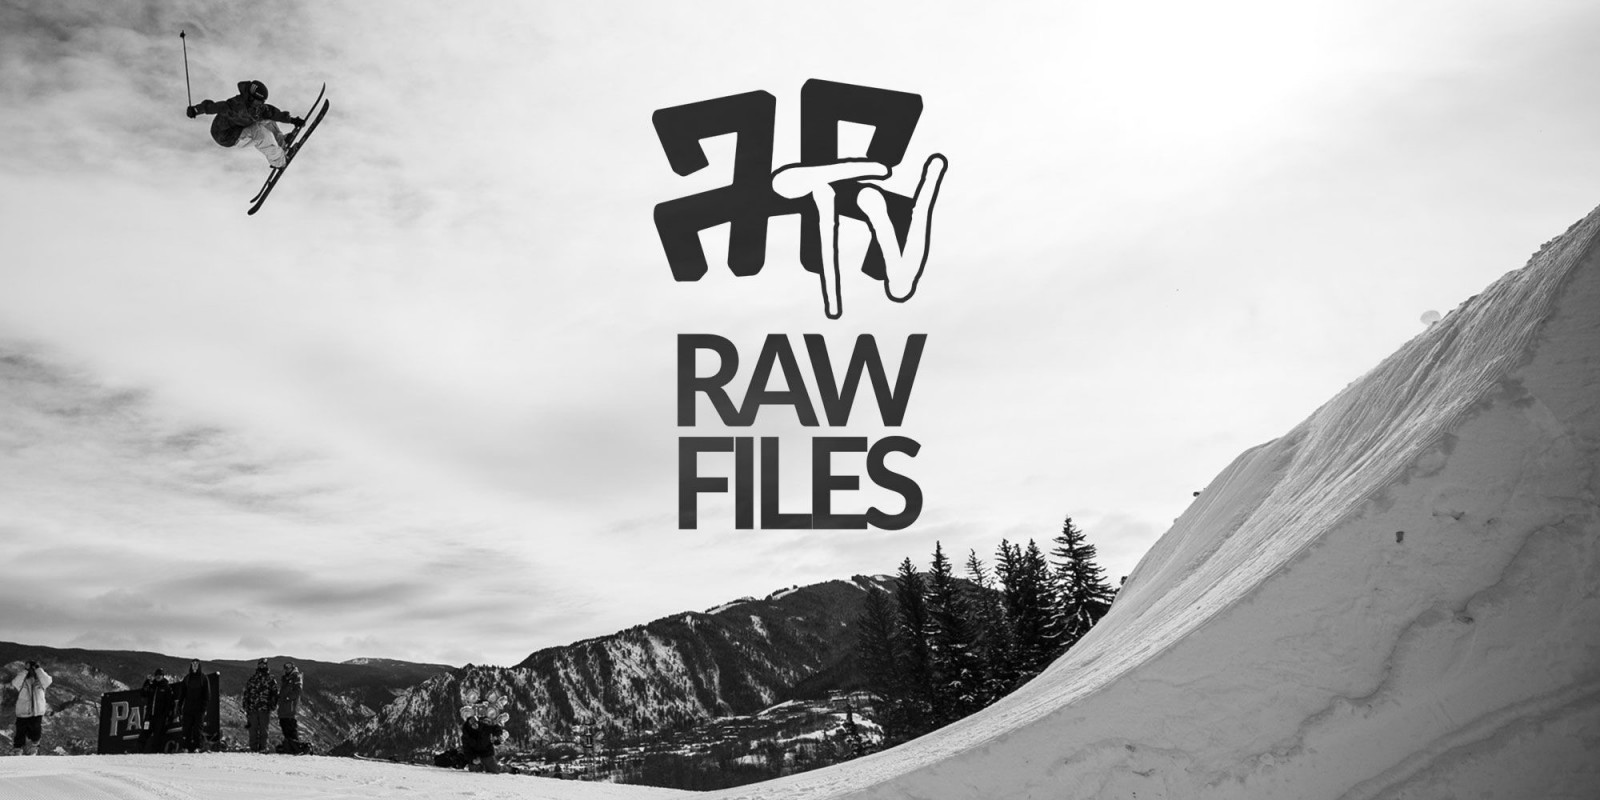 ski, web, henrik, raw files